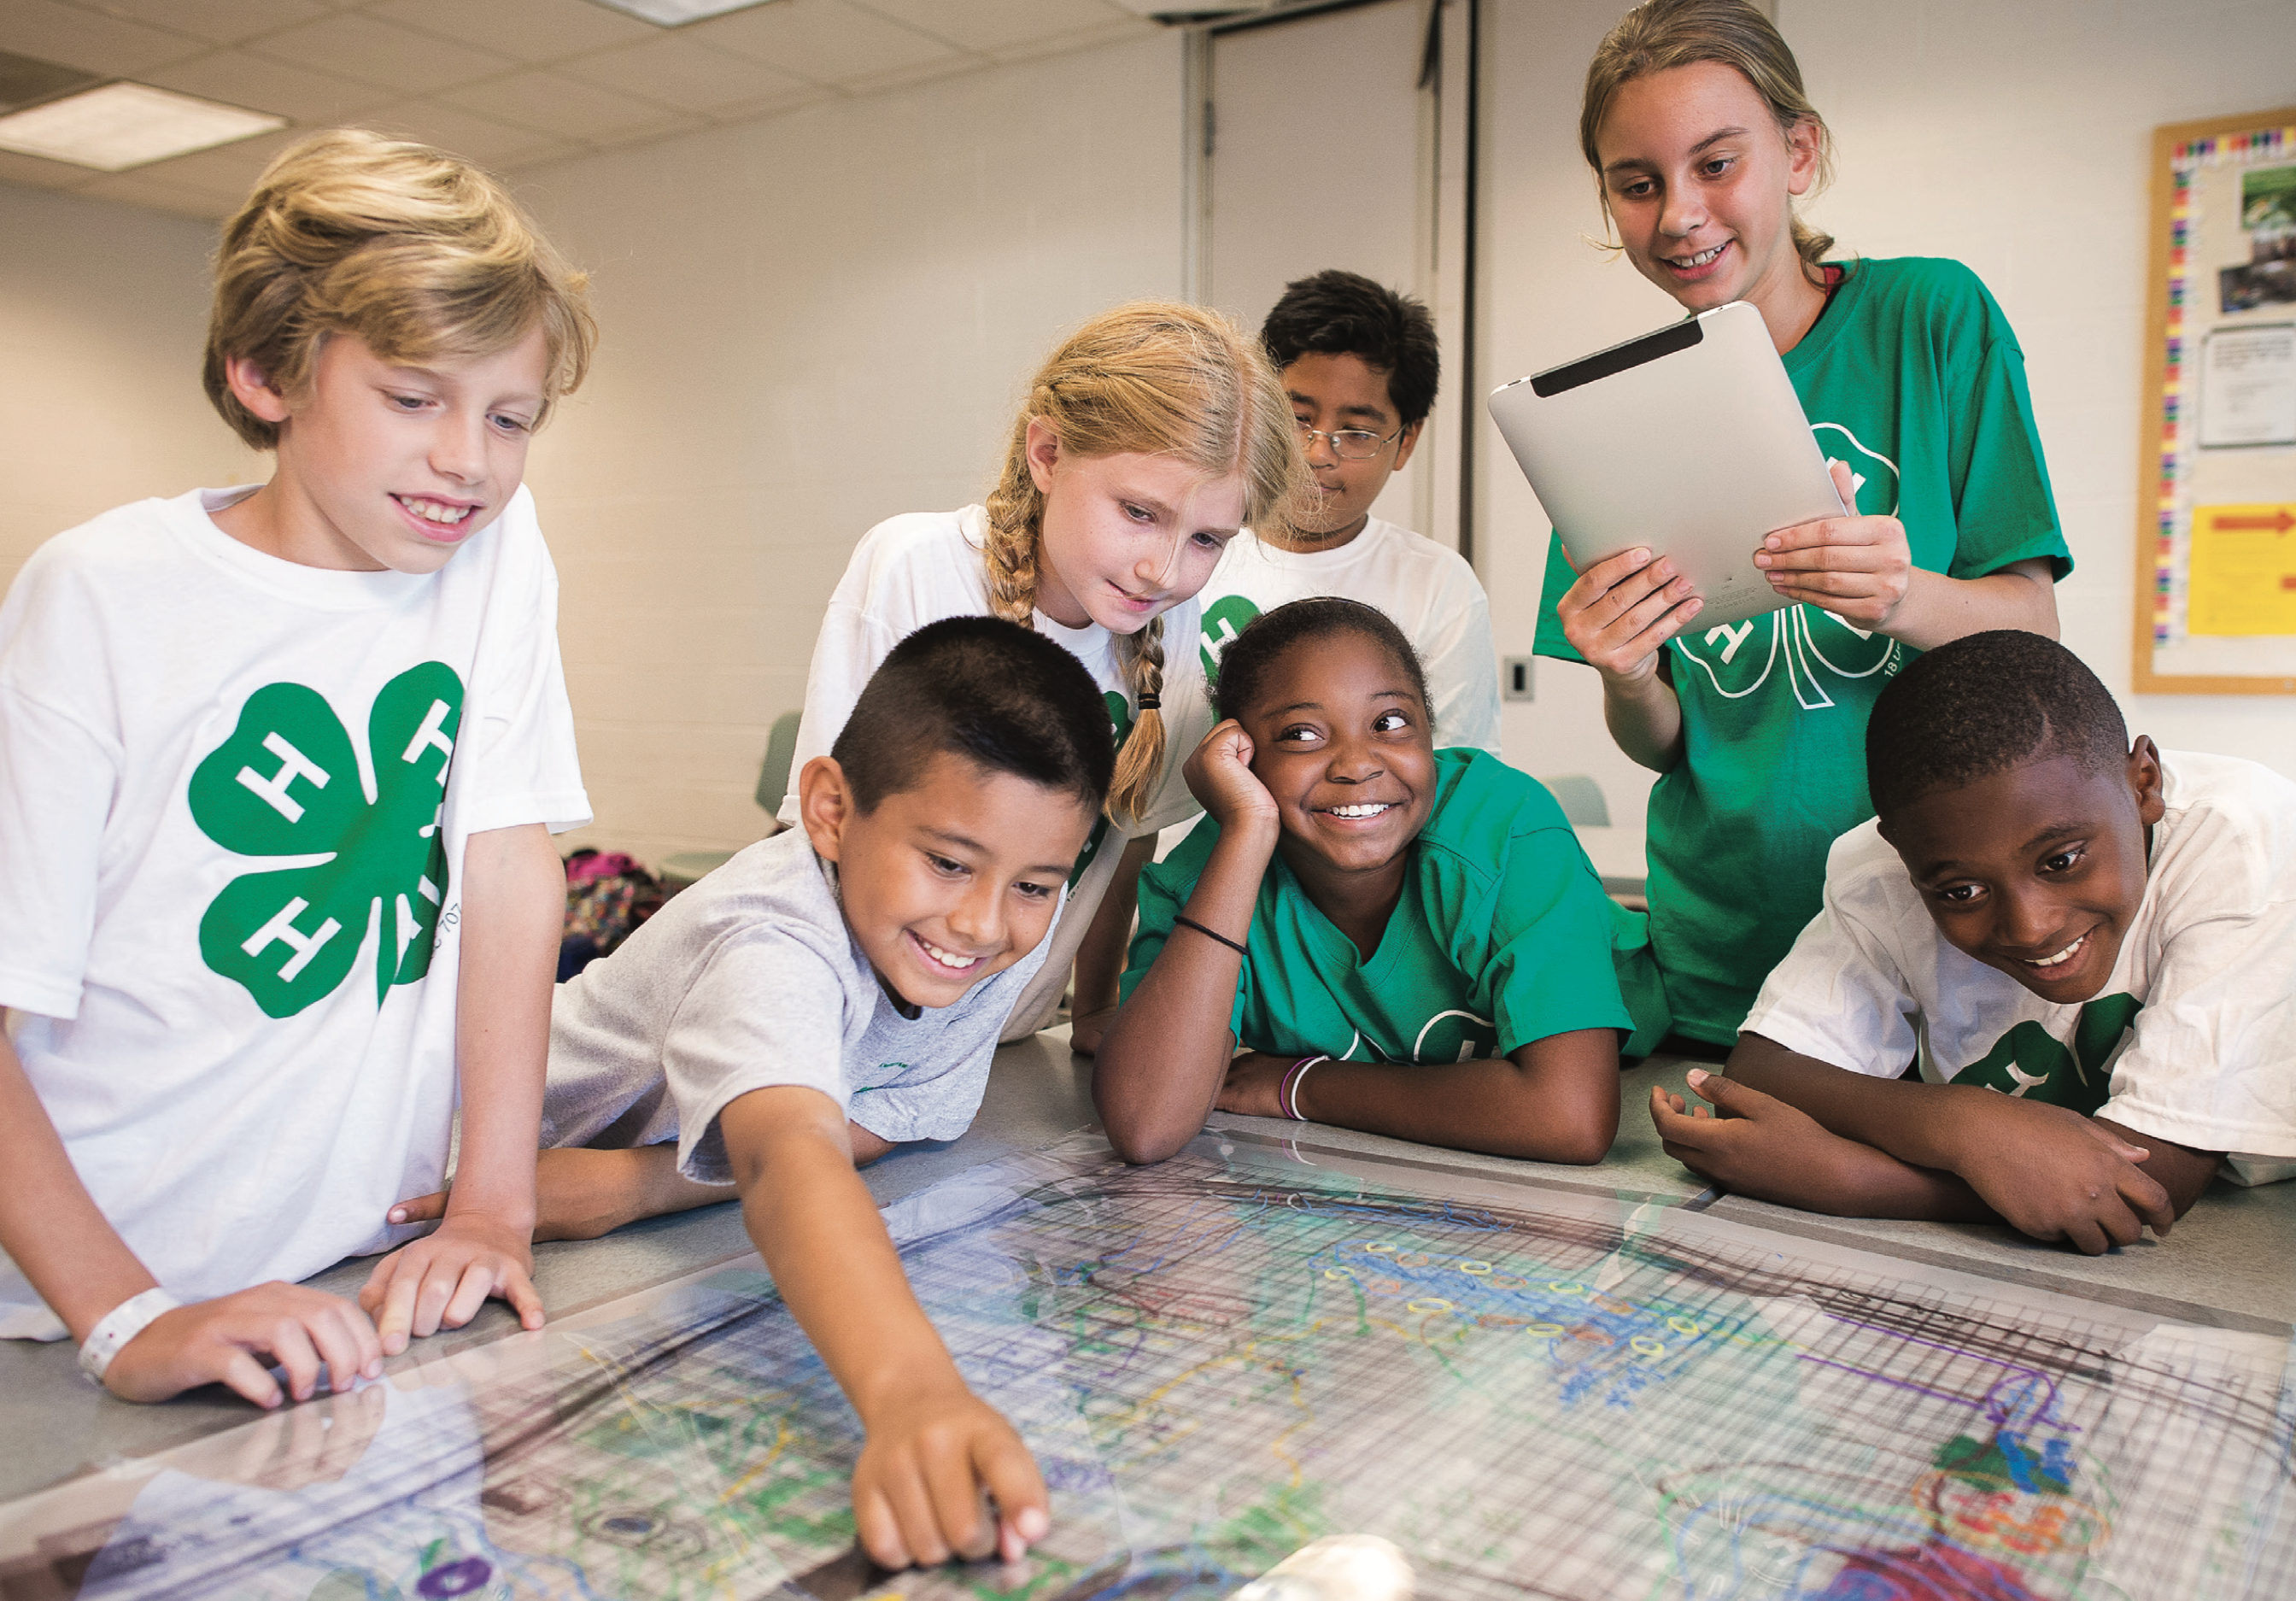 4-H stock photo of youth